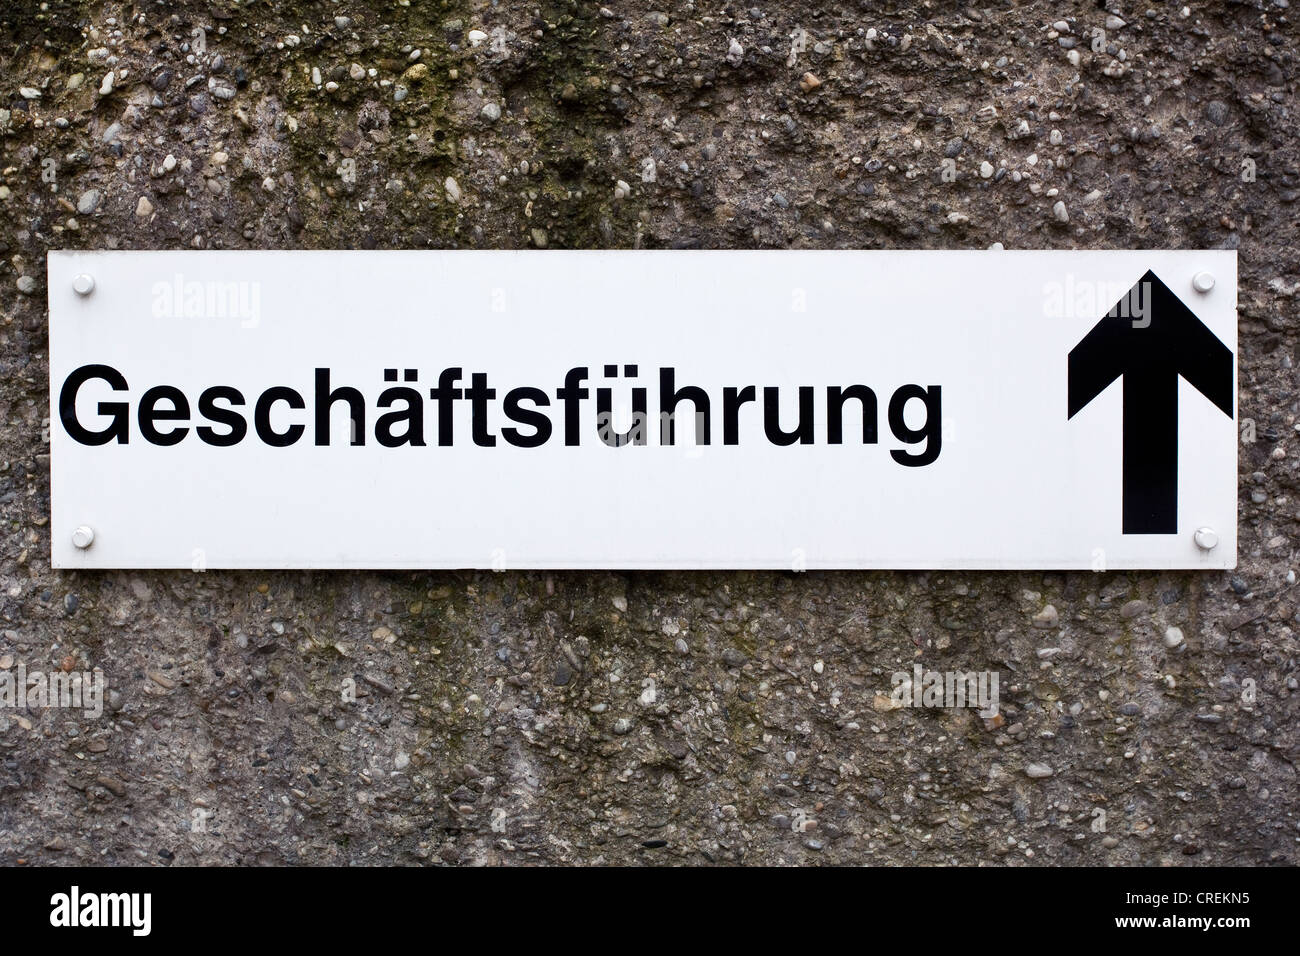 Sign, Geschaeftsfuehrung or business management, and arrow pointing up - Stock Image